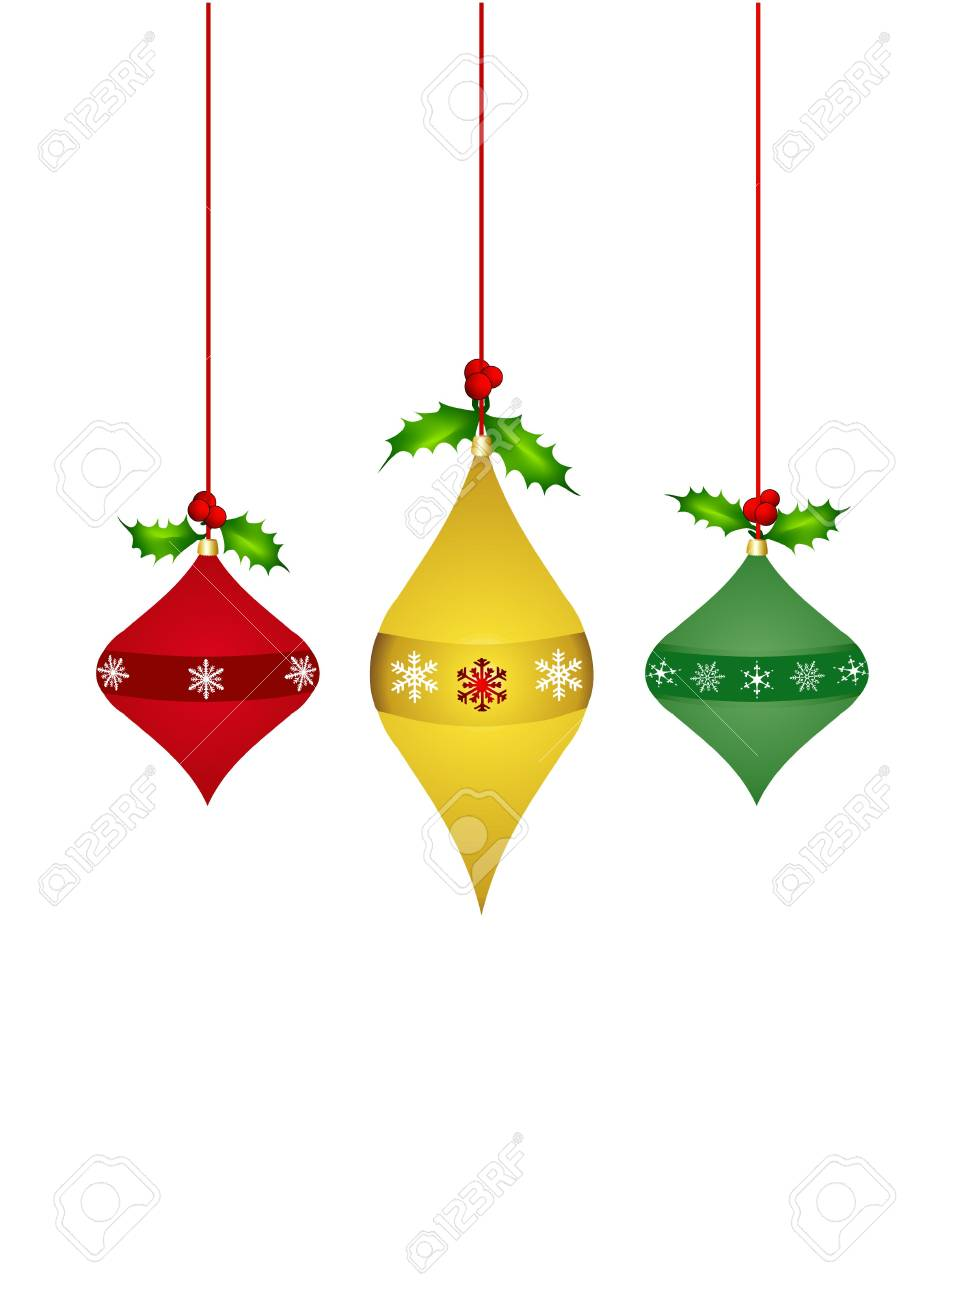 Holly christmas ornaments - Stock Photo Three Dangling Christmas Ornaments Decorated With Holly